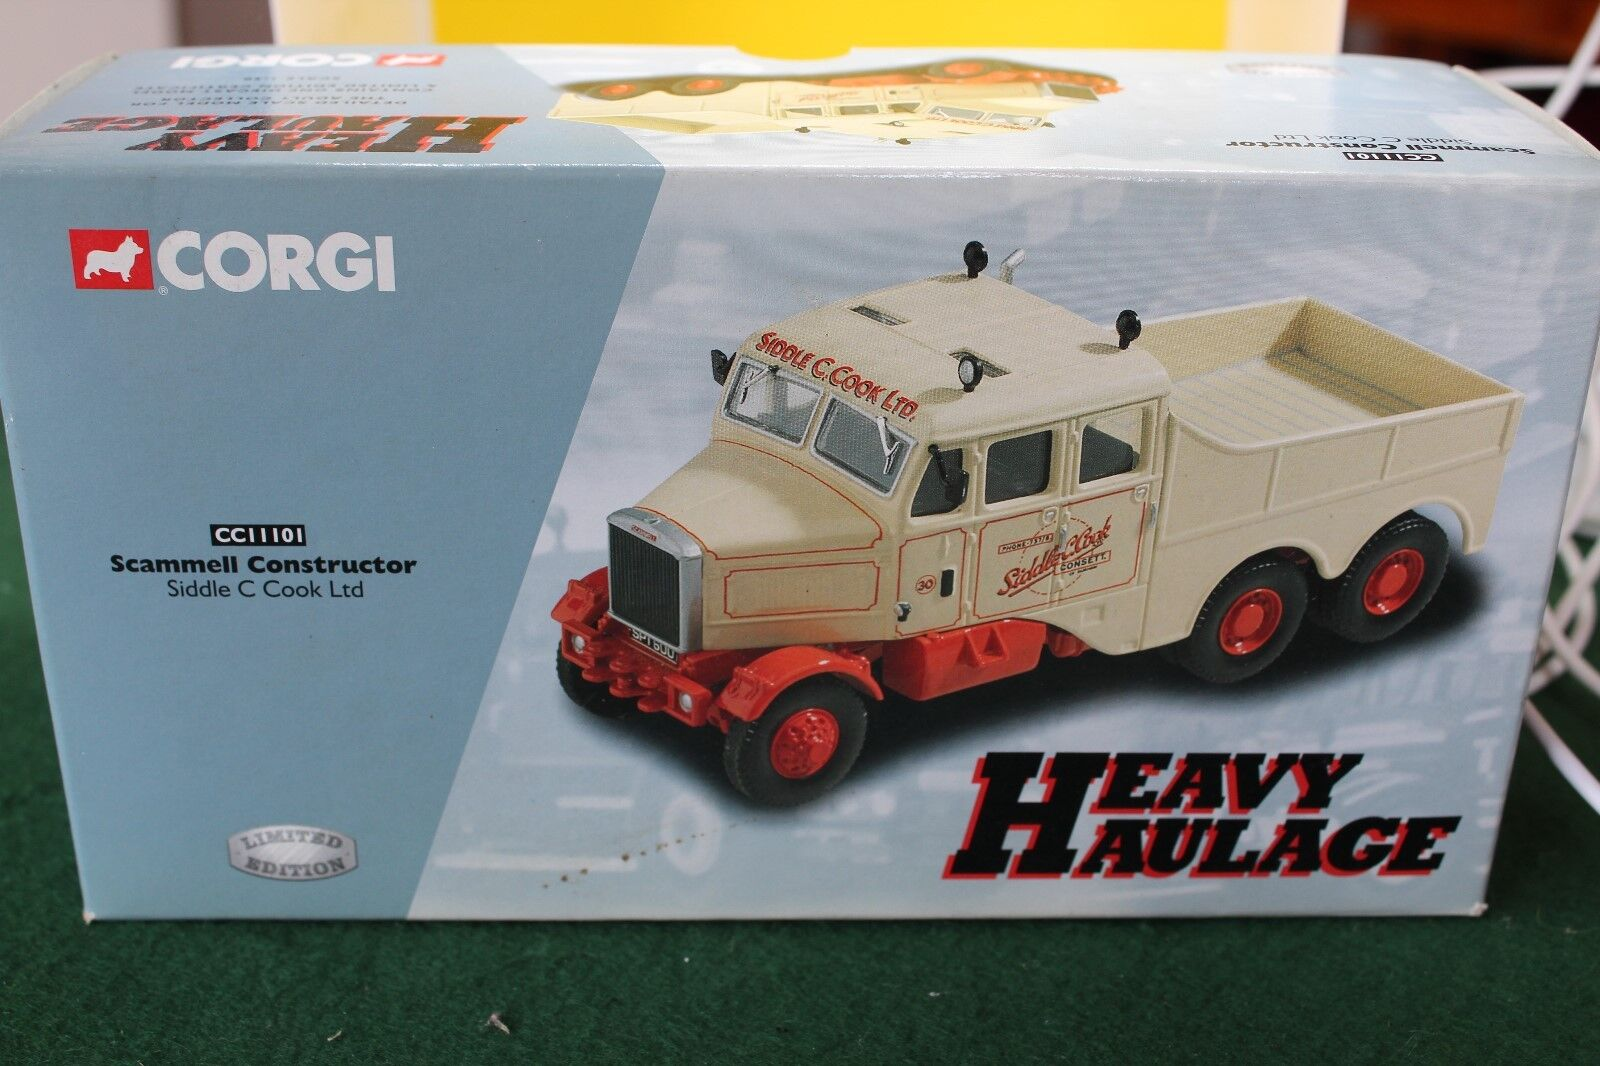 Corgi Classics Heavy Haulage Scammel Constructor in Siddle Cook Cook Cook Livery no 11101 9d74c6